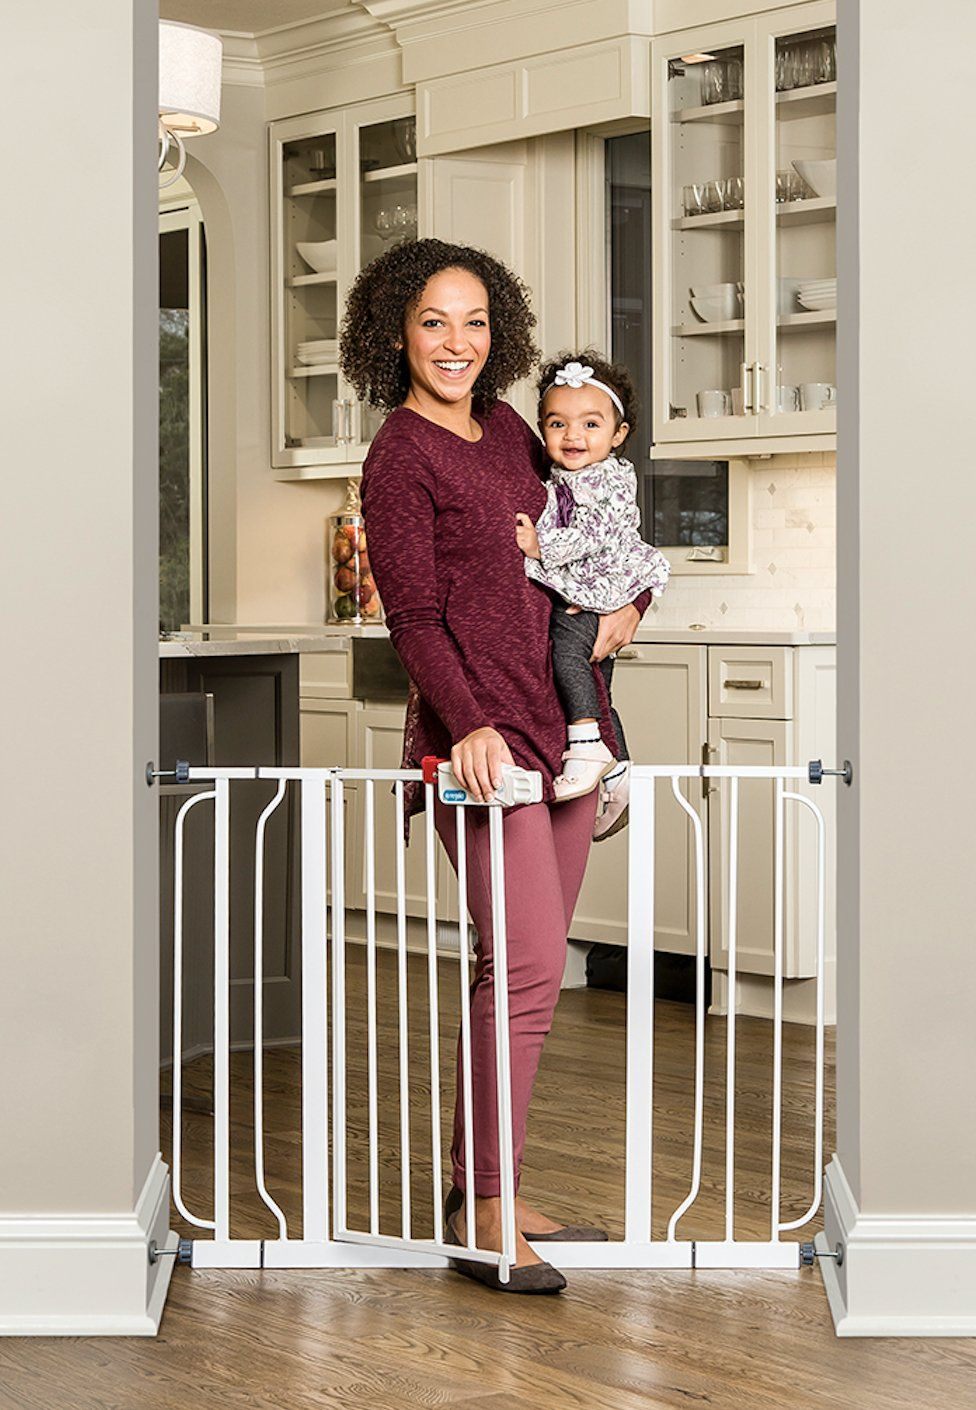 with Extensions Mount Fence Regalo Extra Wide Step Through Baby Gate 29-50 in